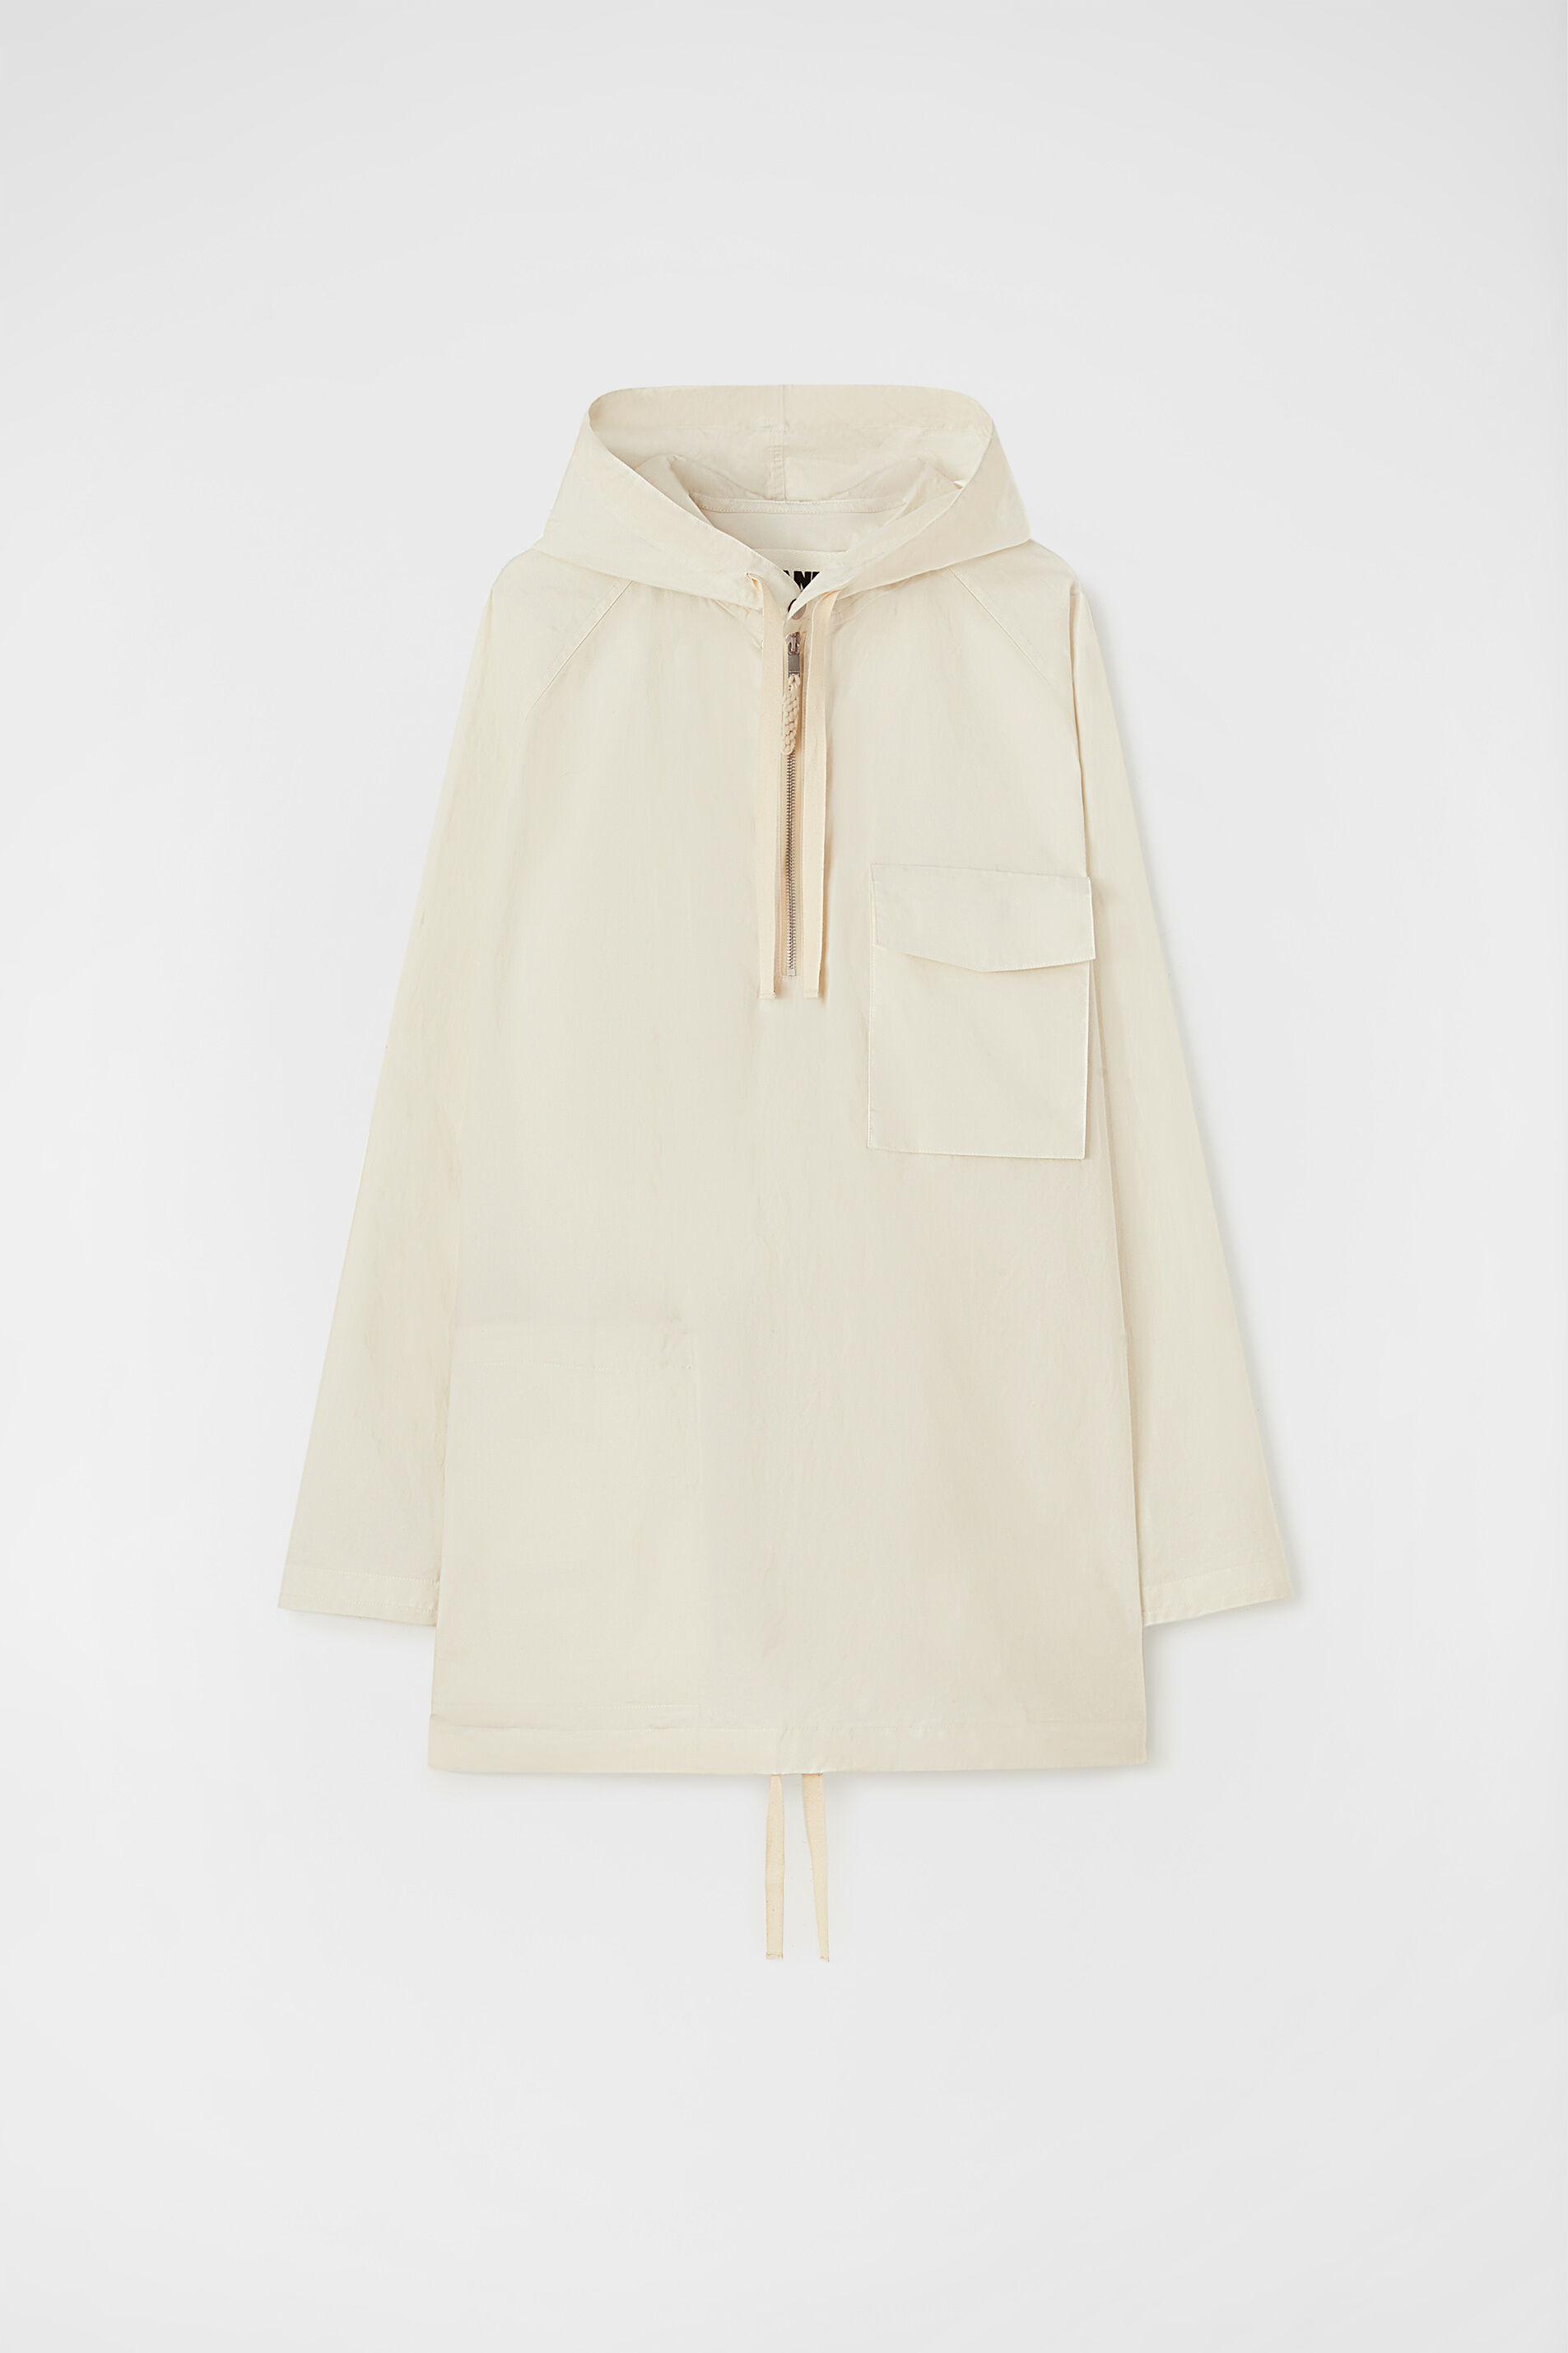 Hooded Anorak, natural, large